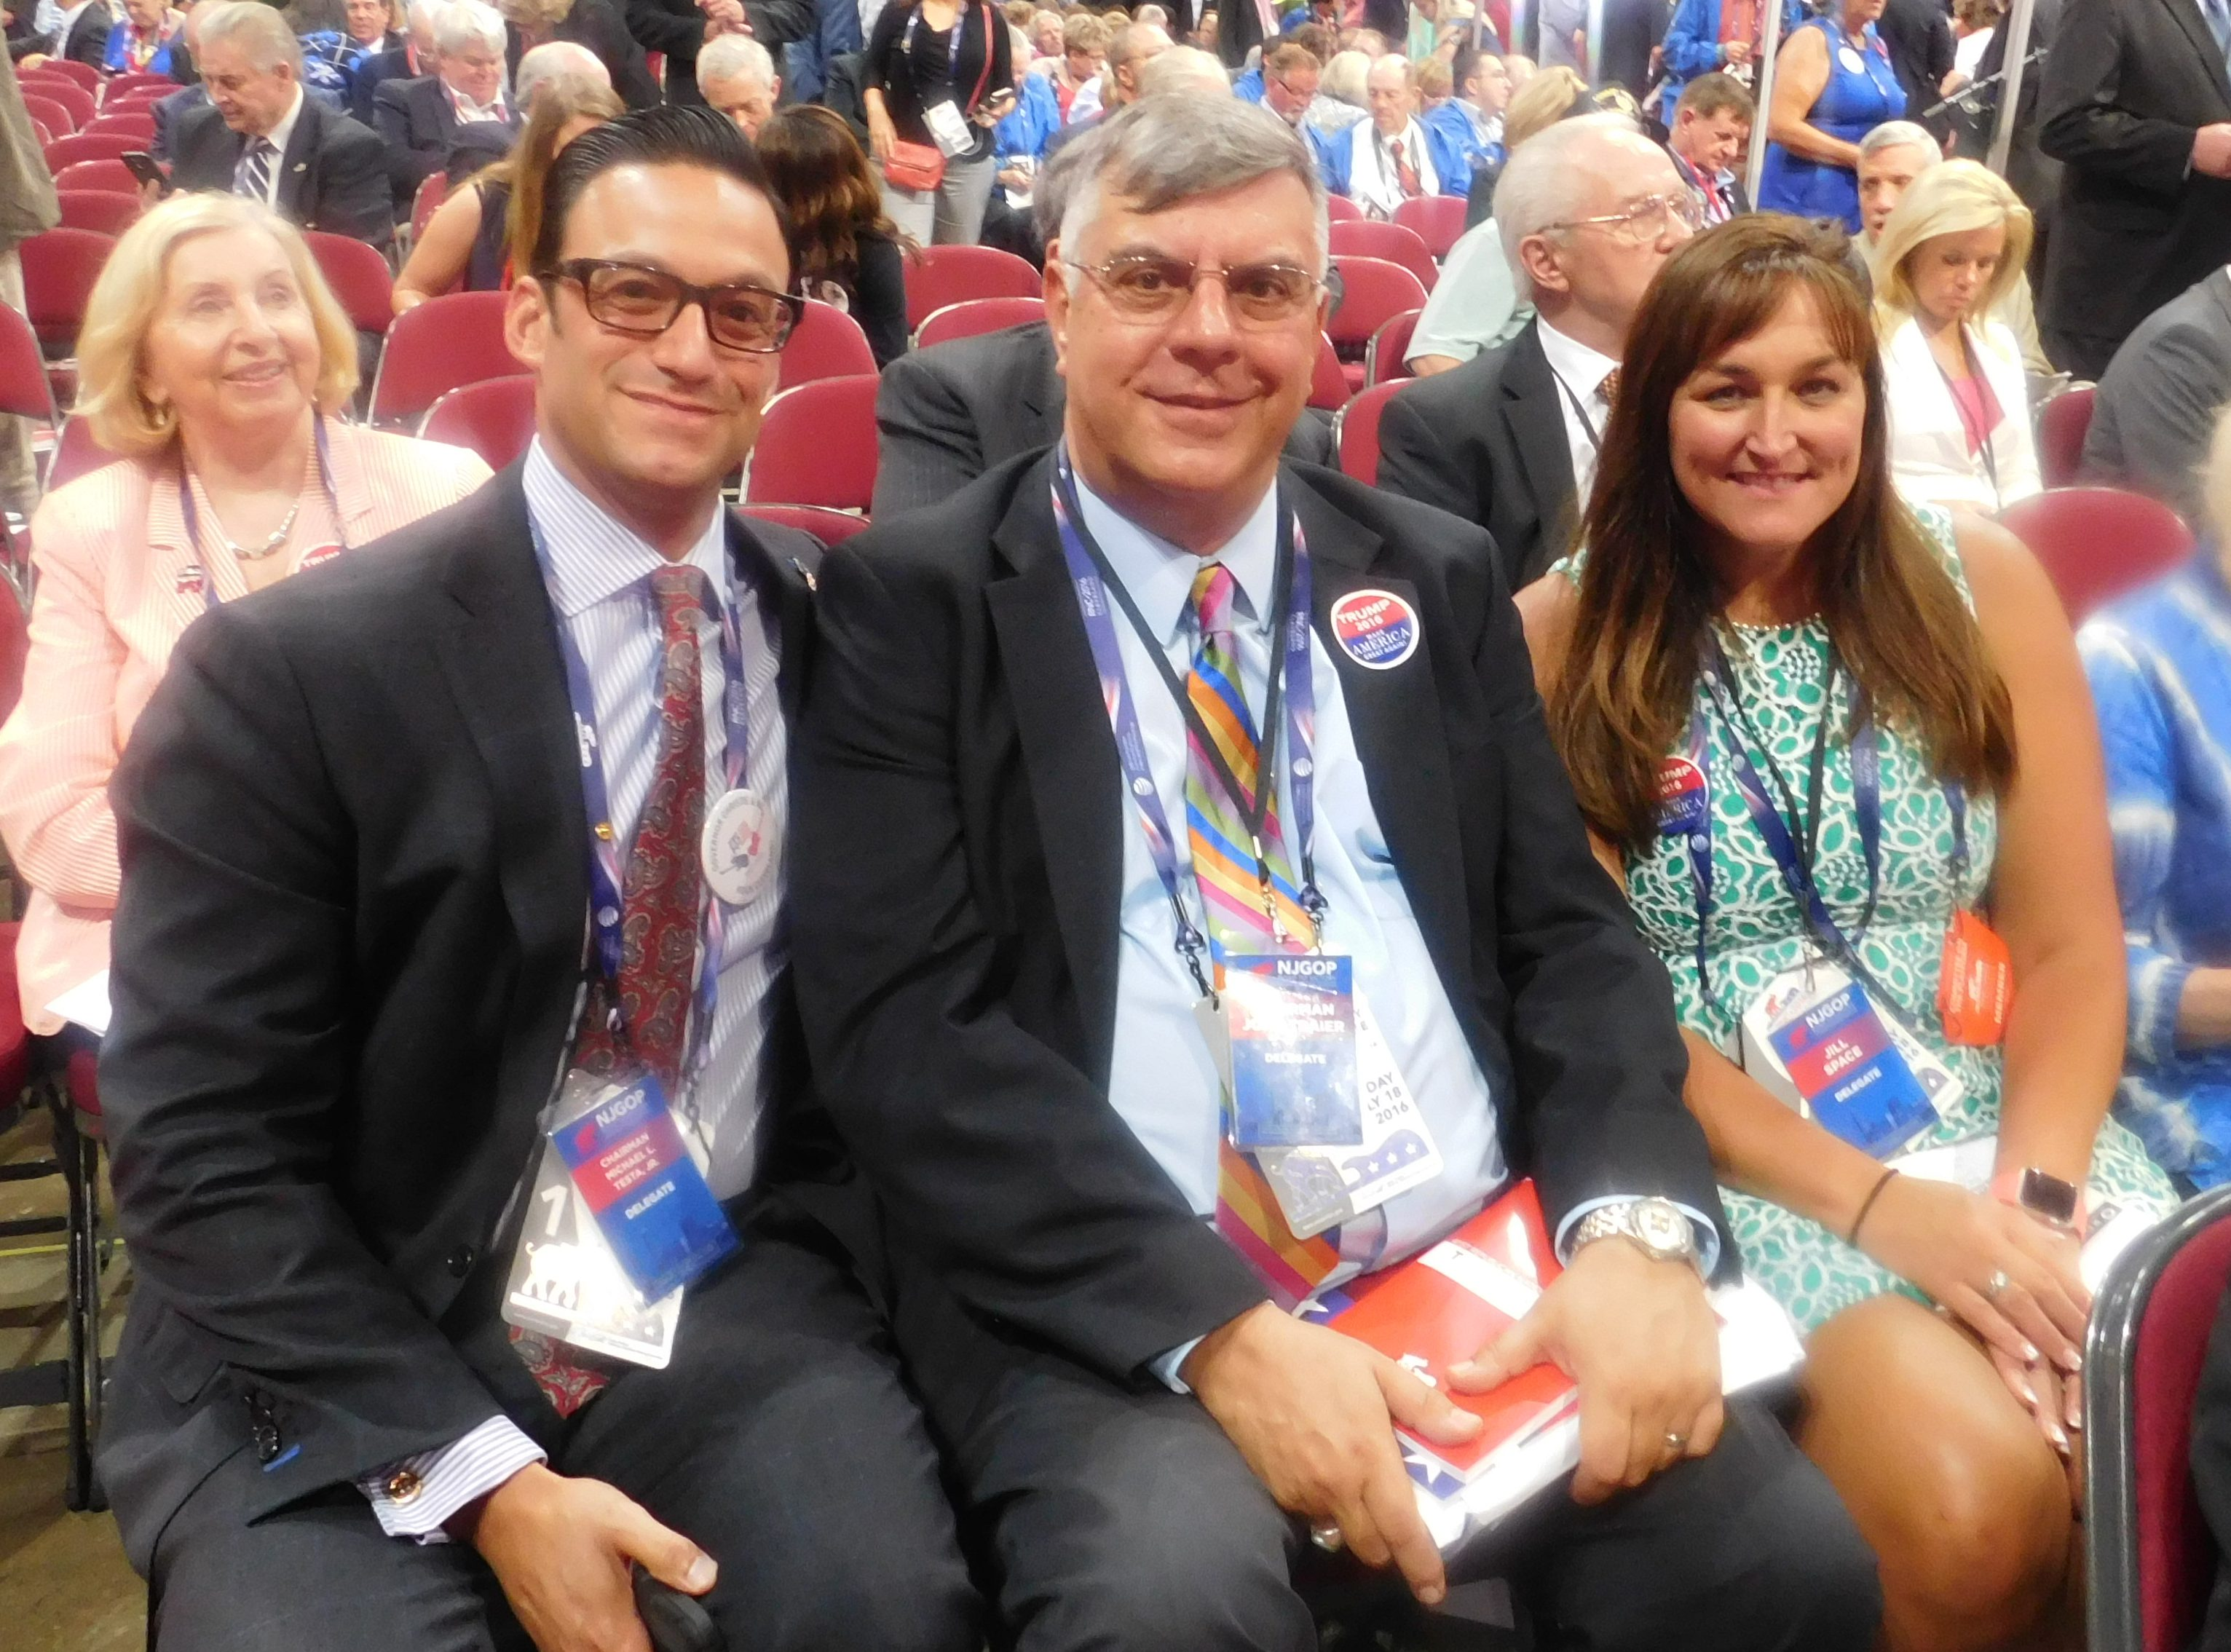 From left: Testa, Traier and Space at the 2016 RNC.